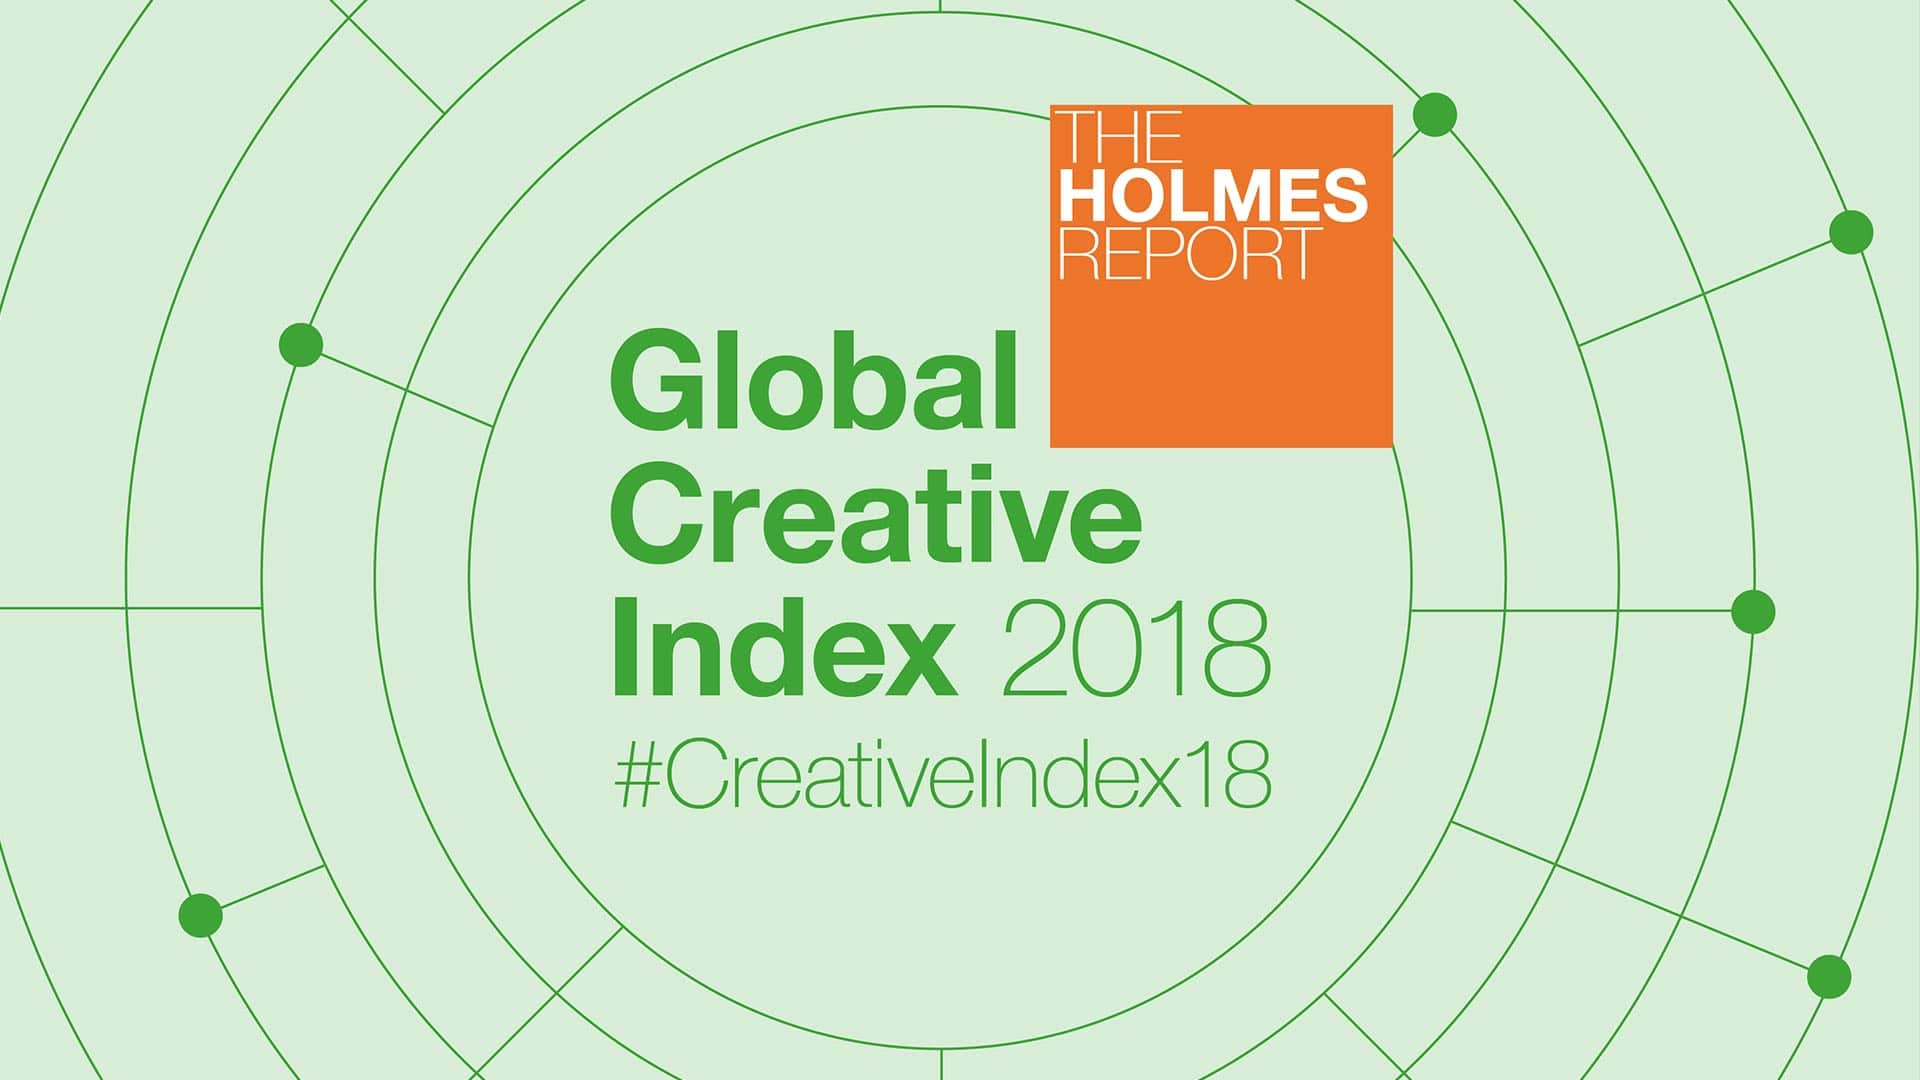 M Booth Named to the Holmes Report's Top Global Creative Index